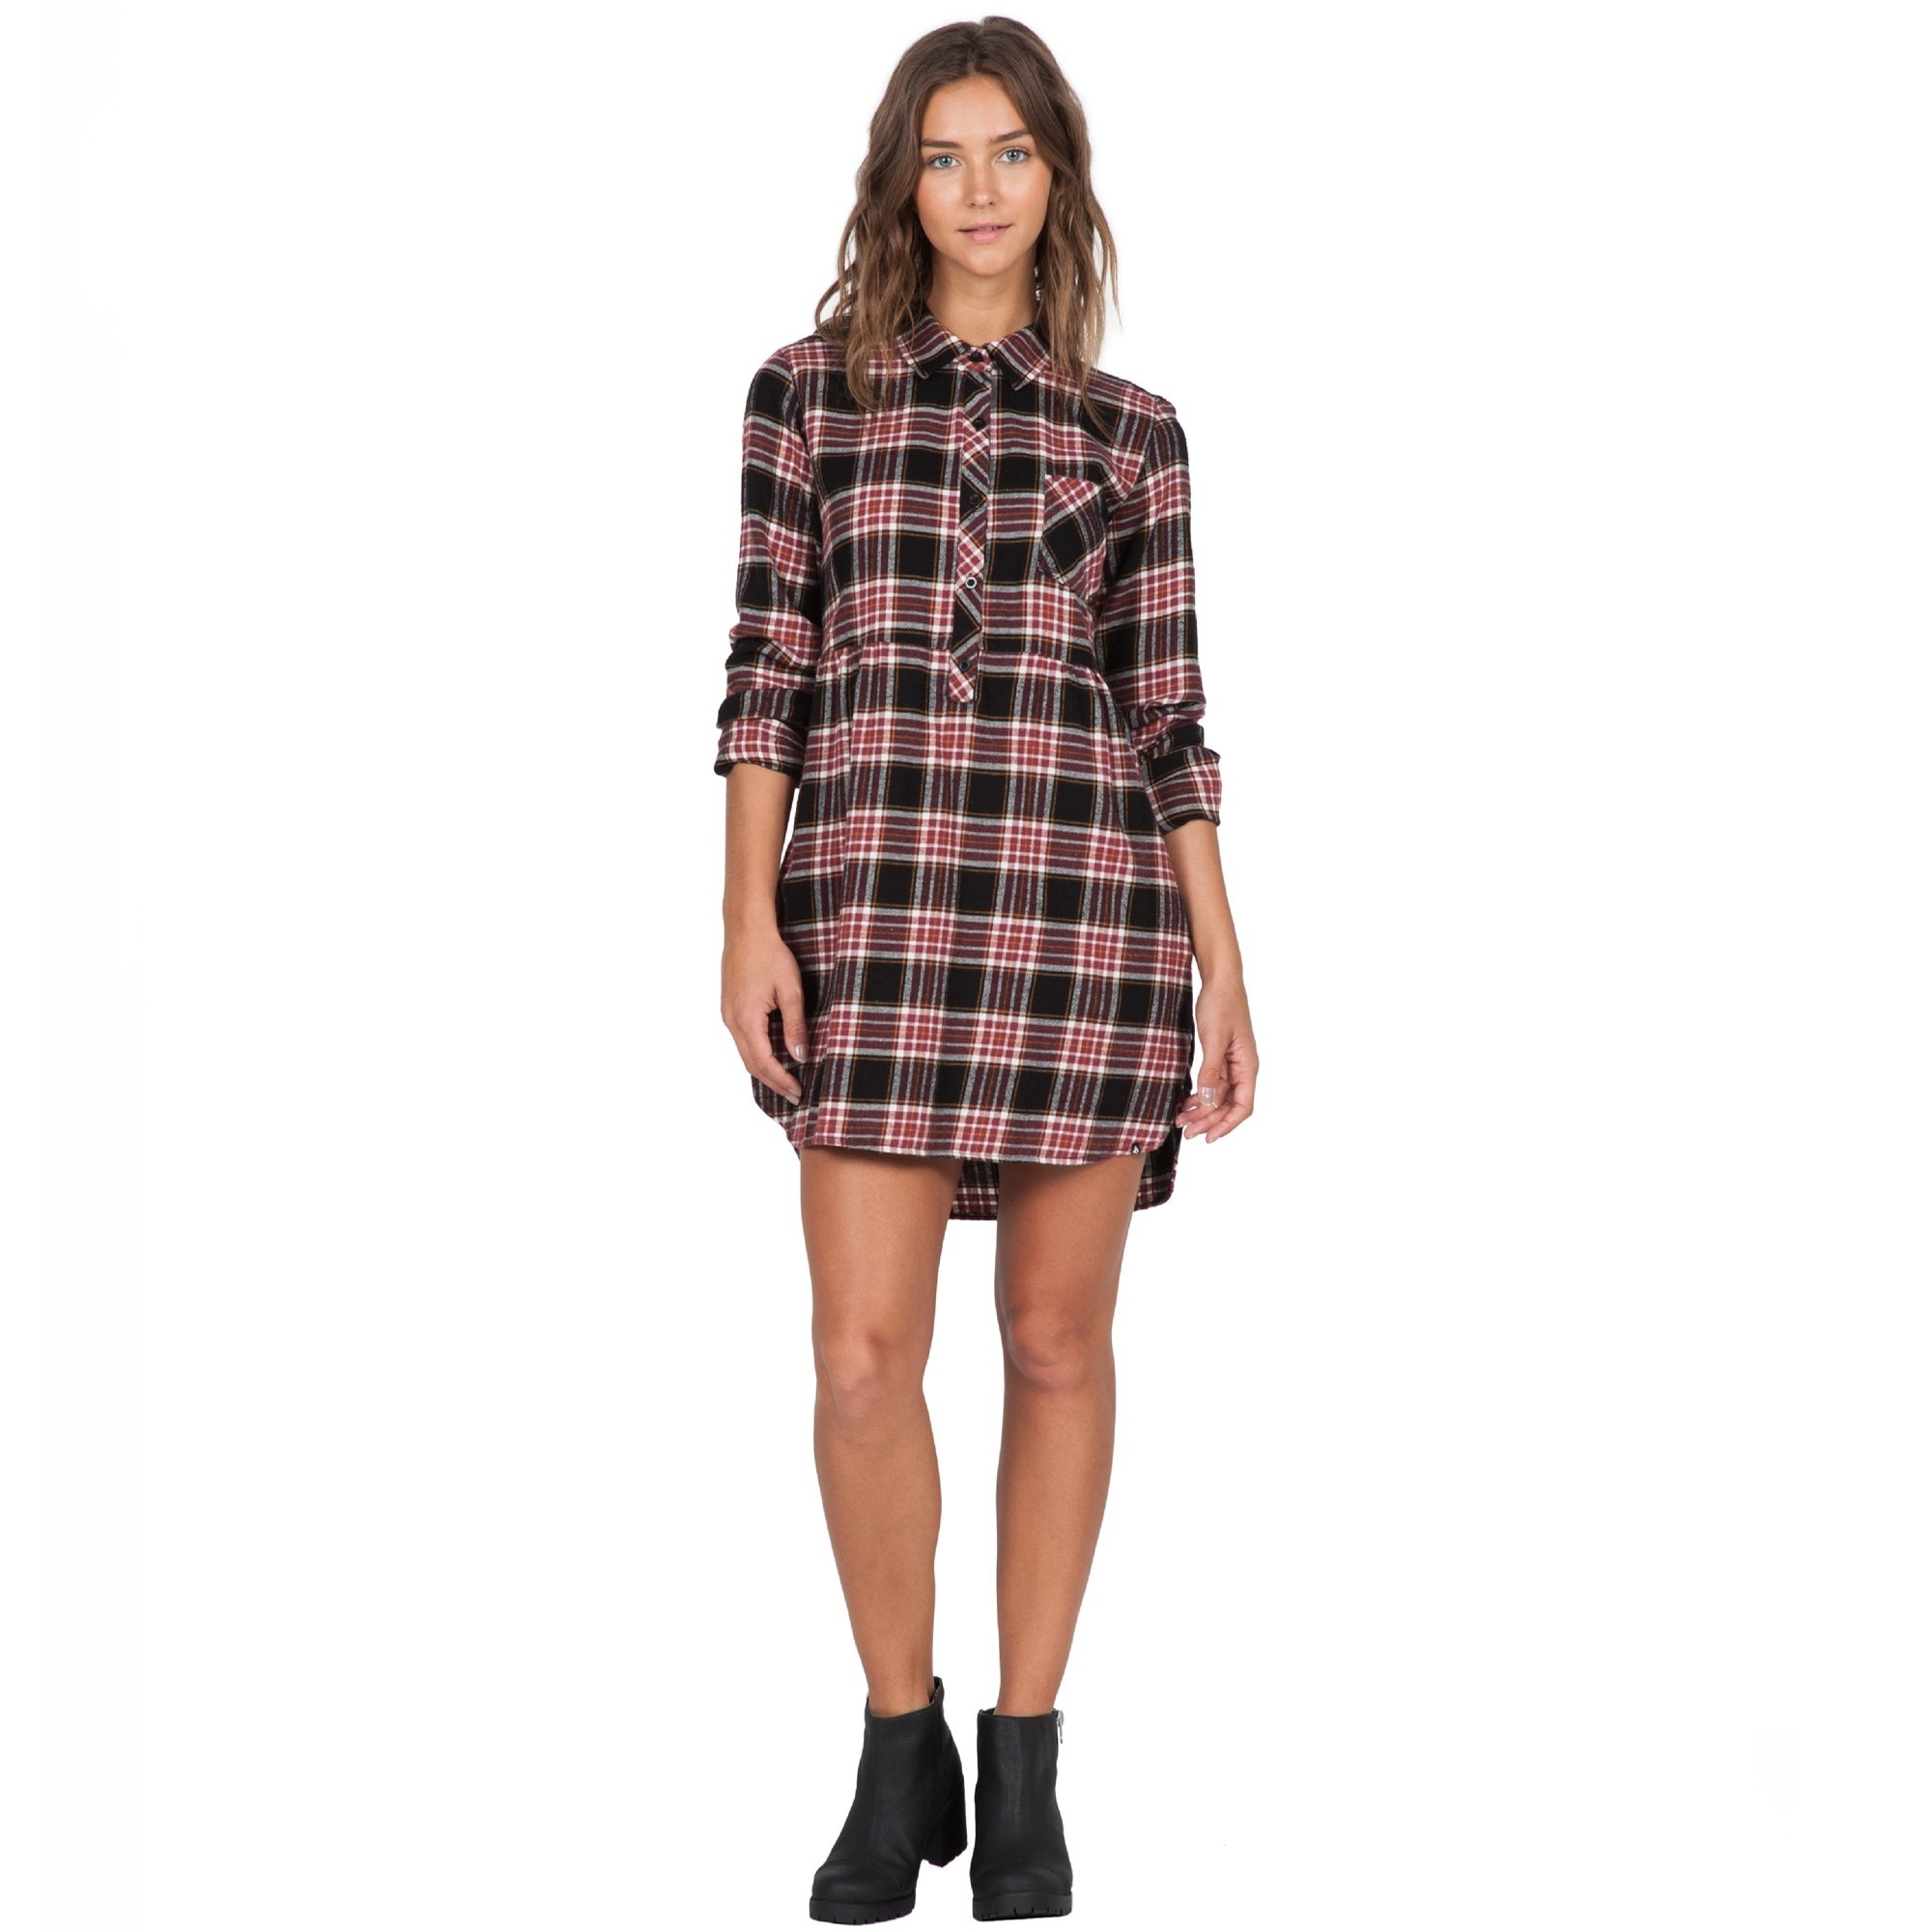 Cozy Day Dress (Black/Combo)